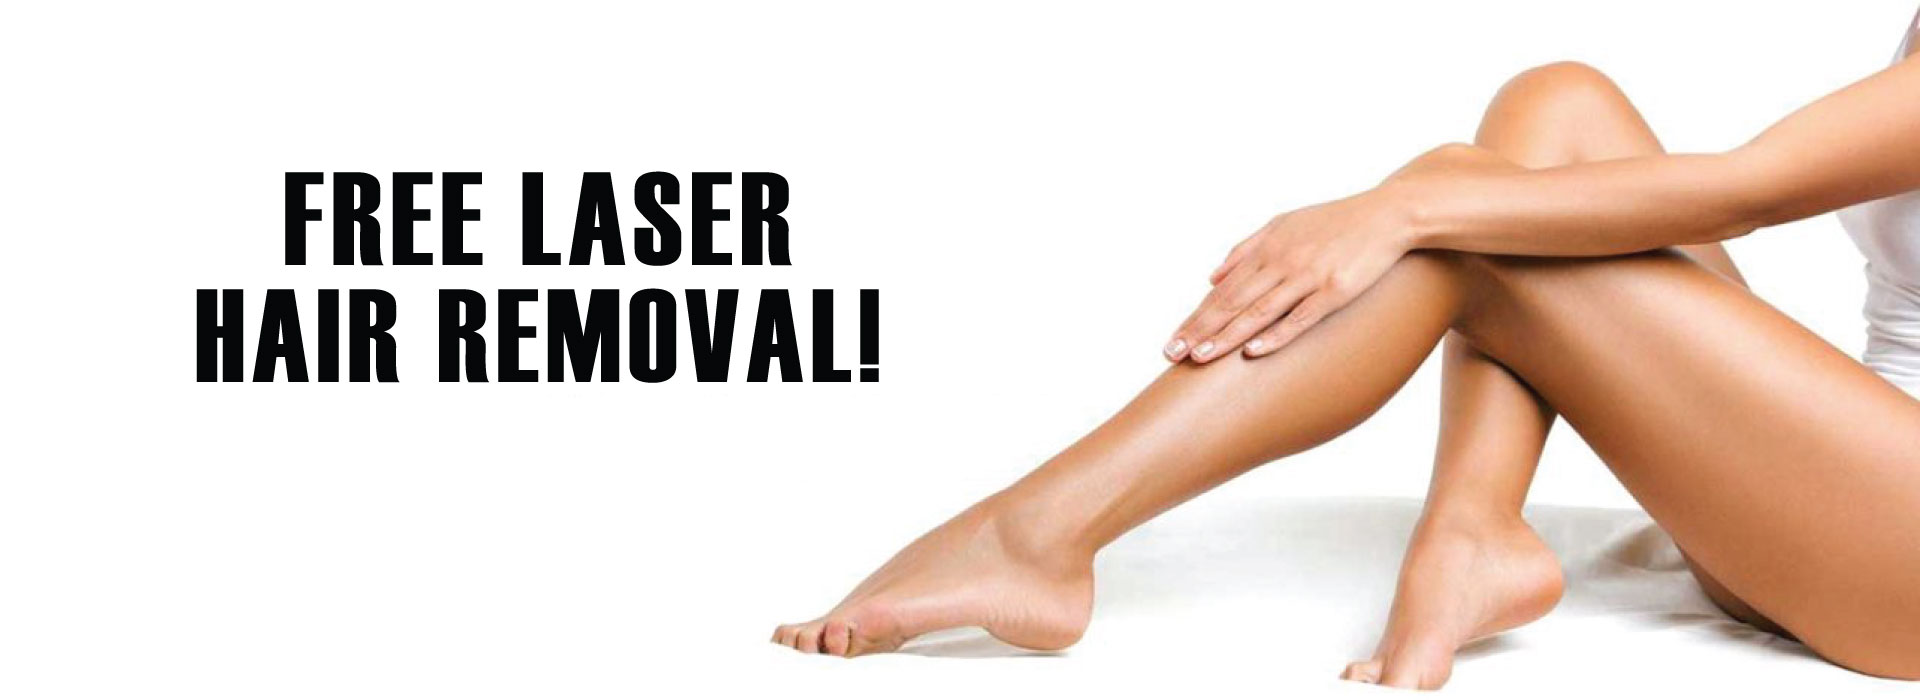 FREE LASER HAIR REMOVAL!